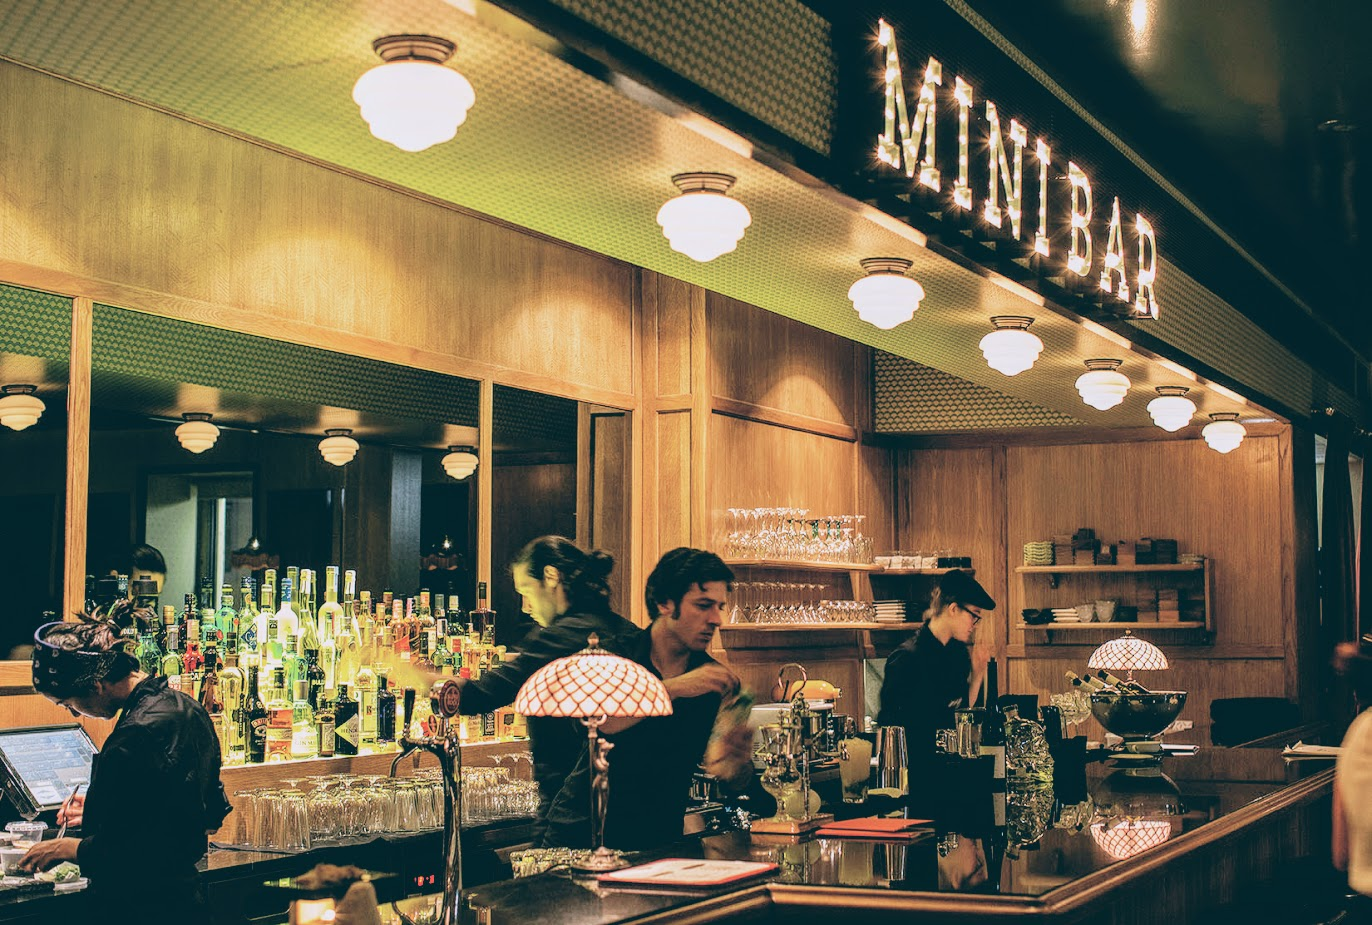 Lisbon: one fine gastronomical play at Mini Bar